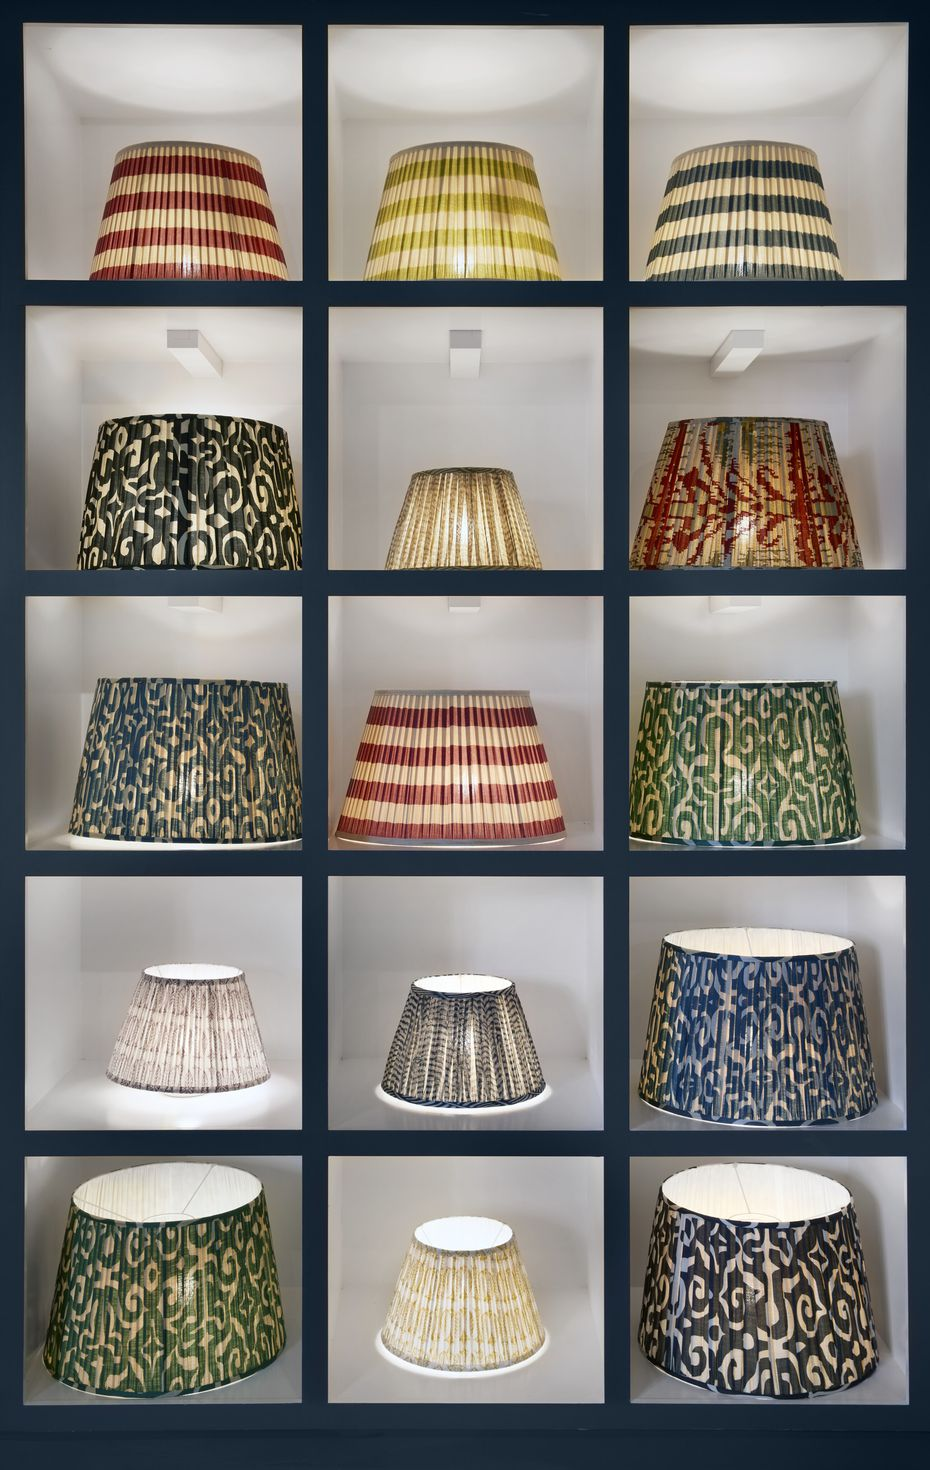 Mix and match lamp shades at OKA, which promotes color and patterns in its home furnishings designs.